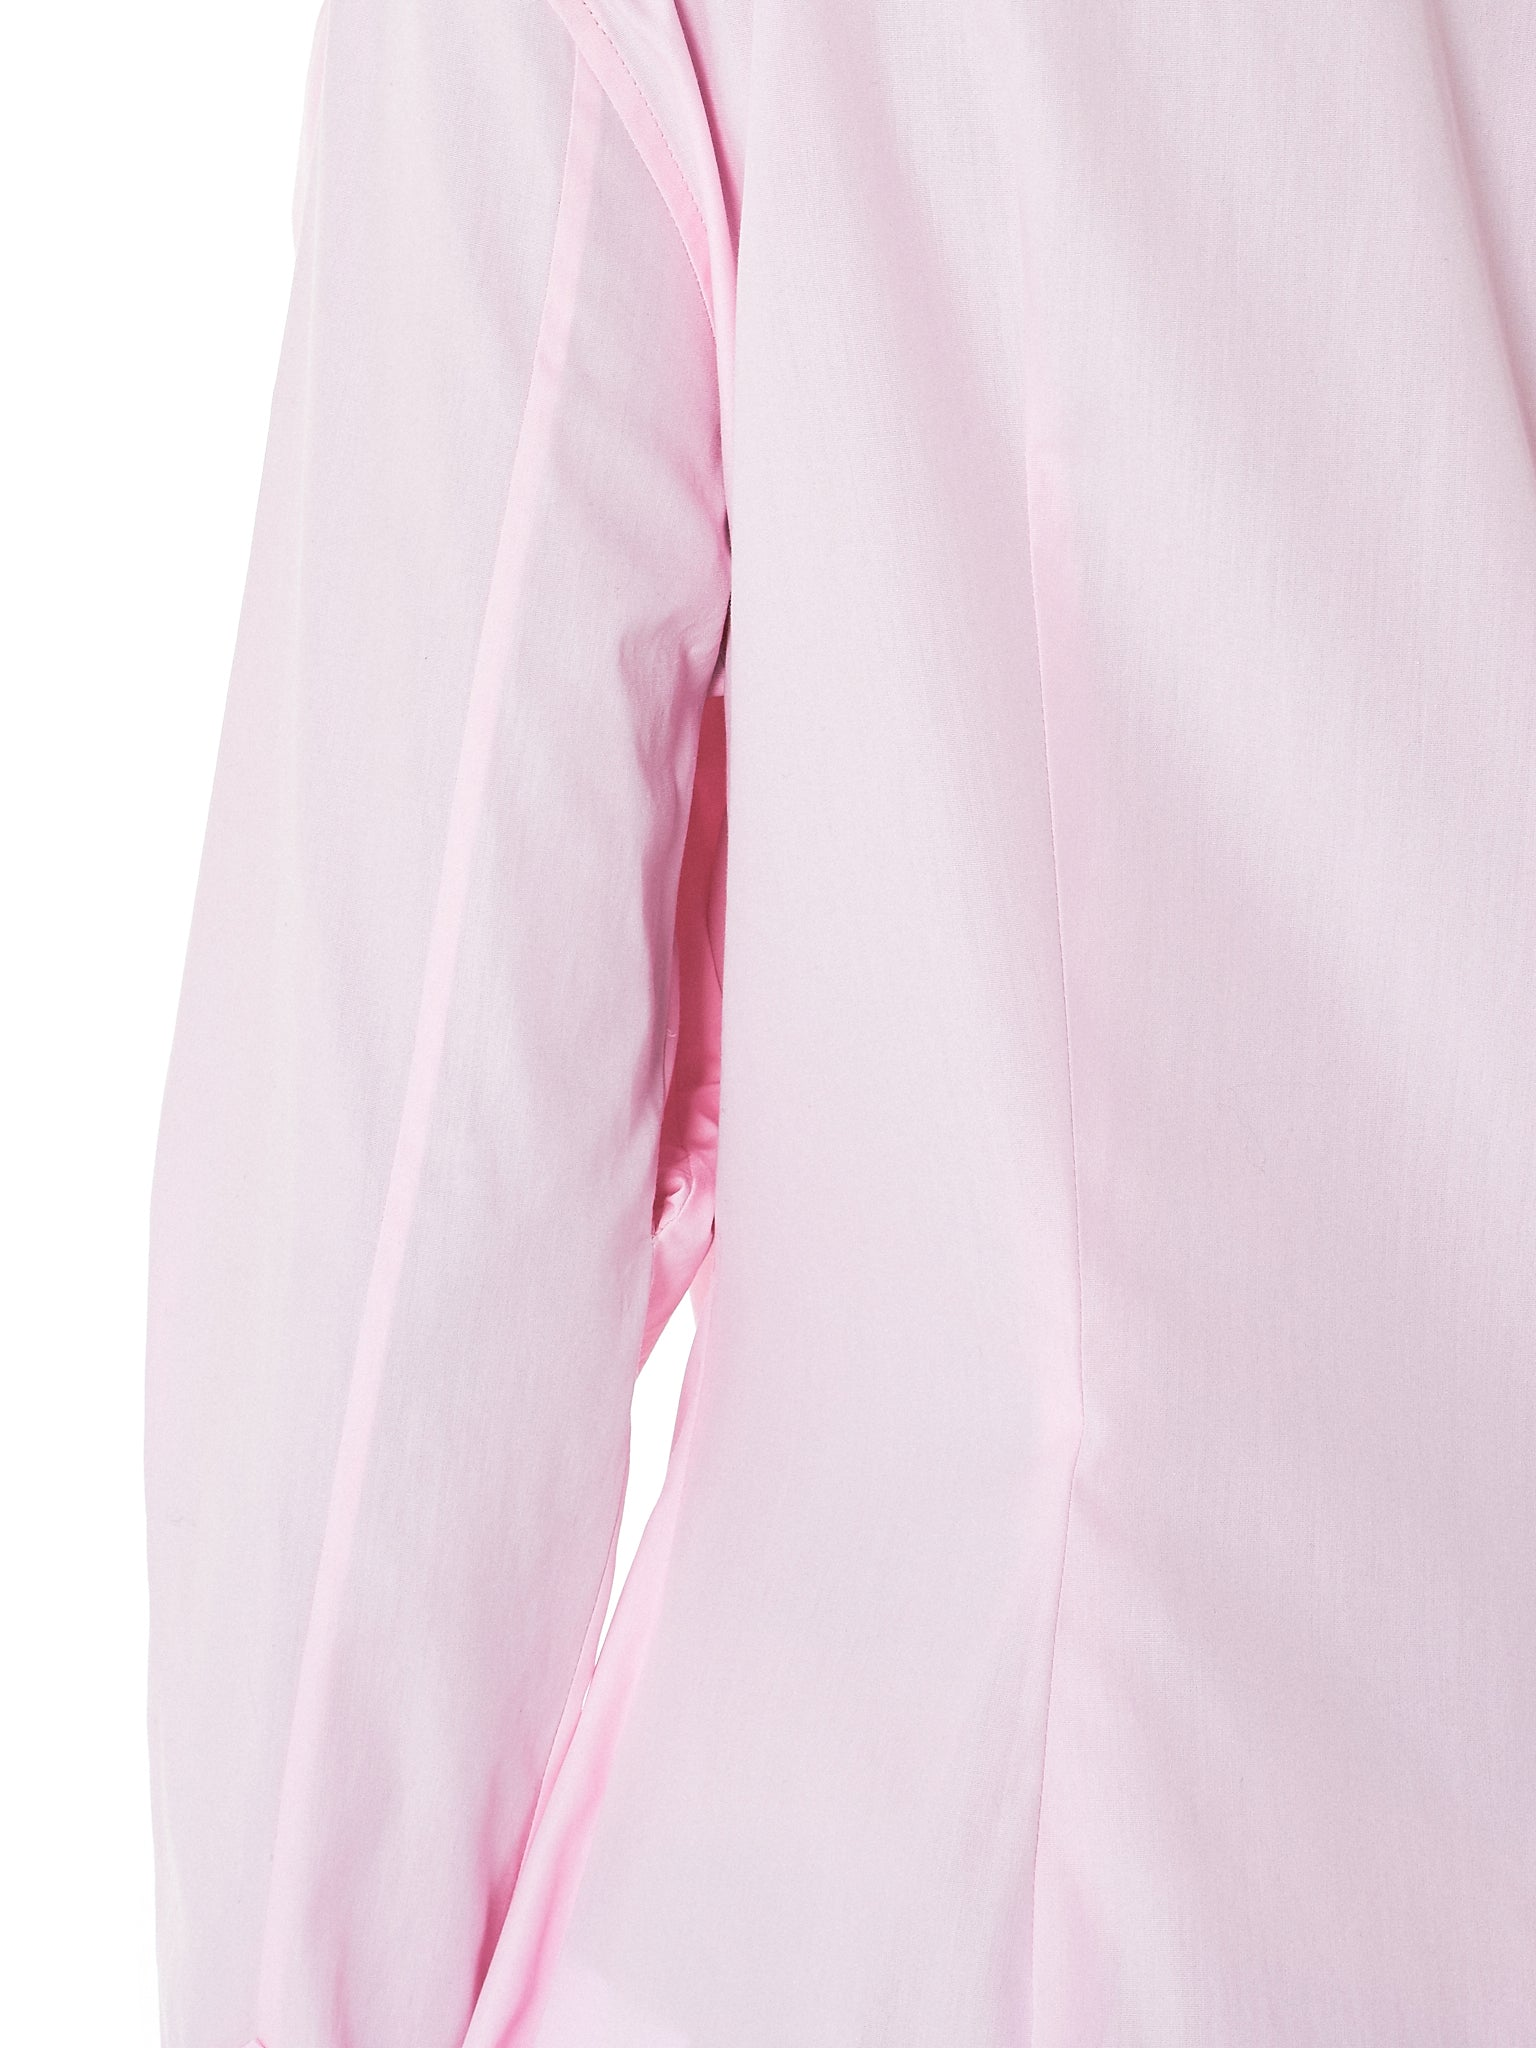 Y/Project Shirt Dress - Hlorenzo Detail 5